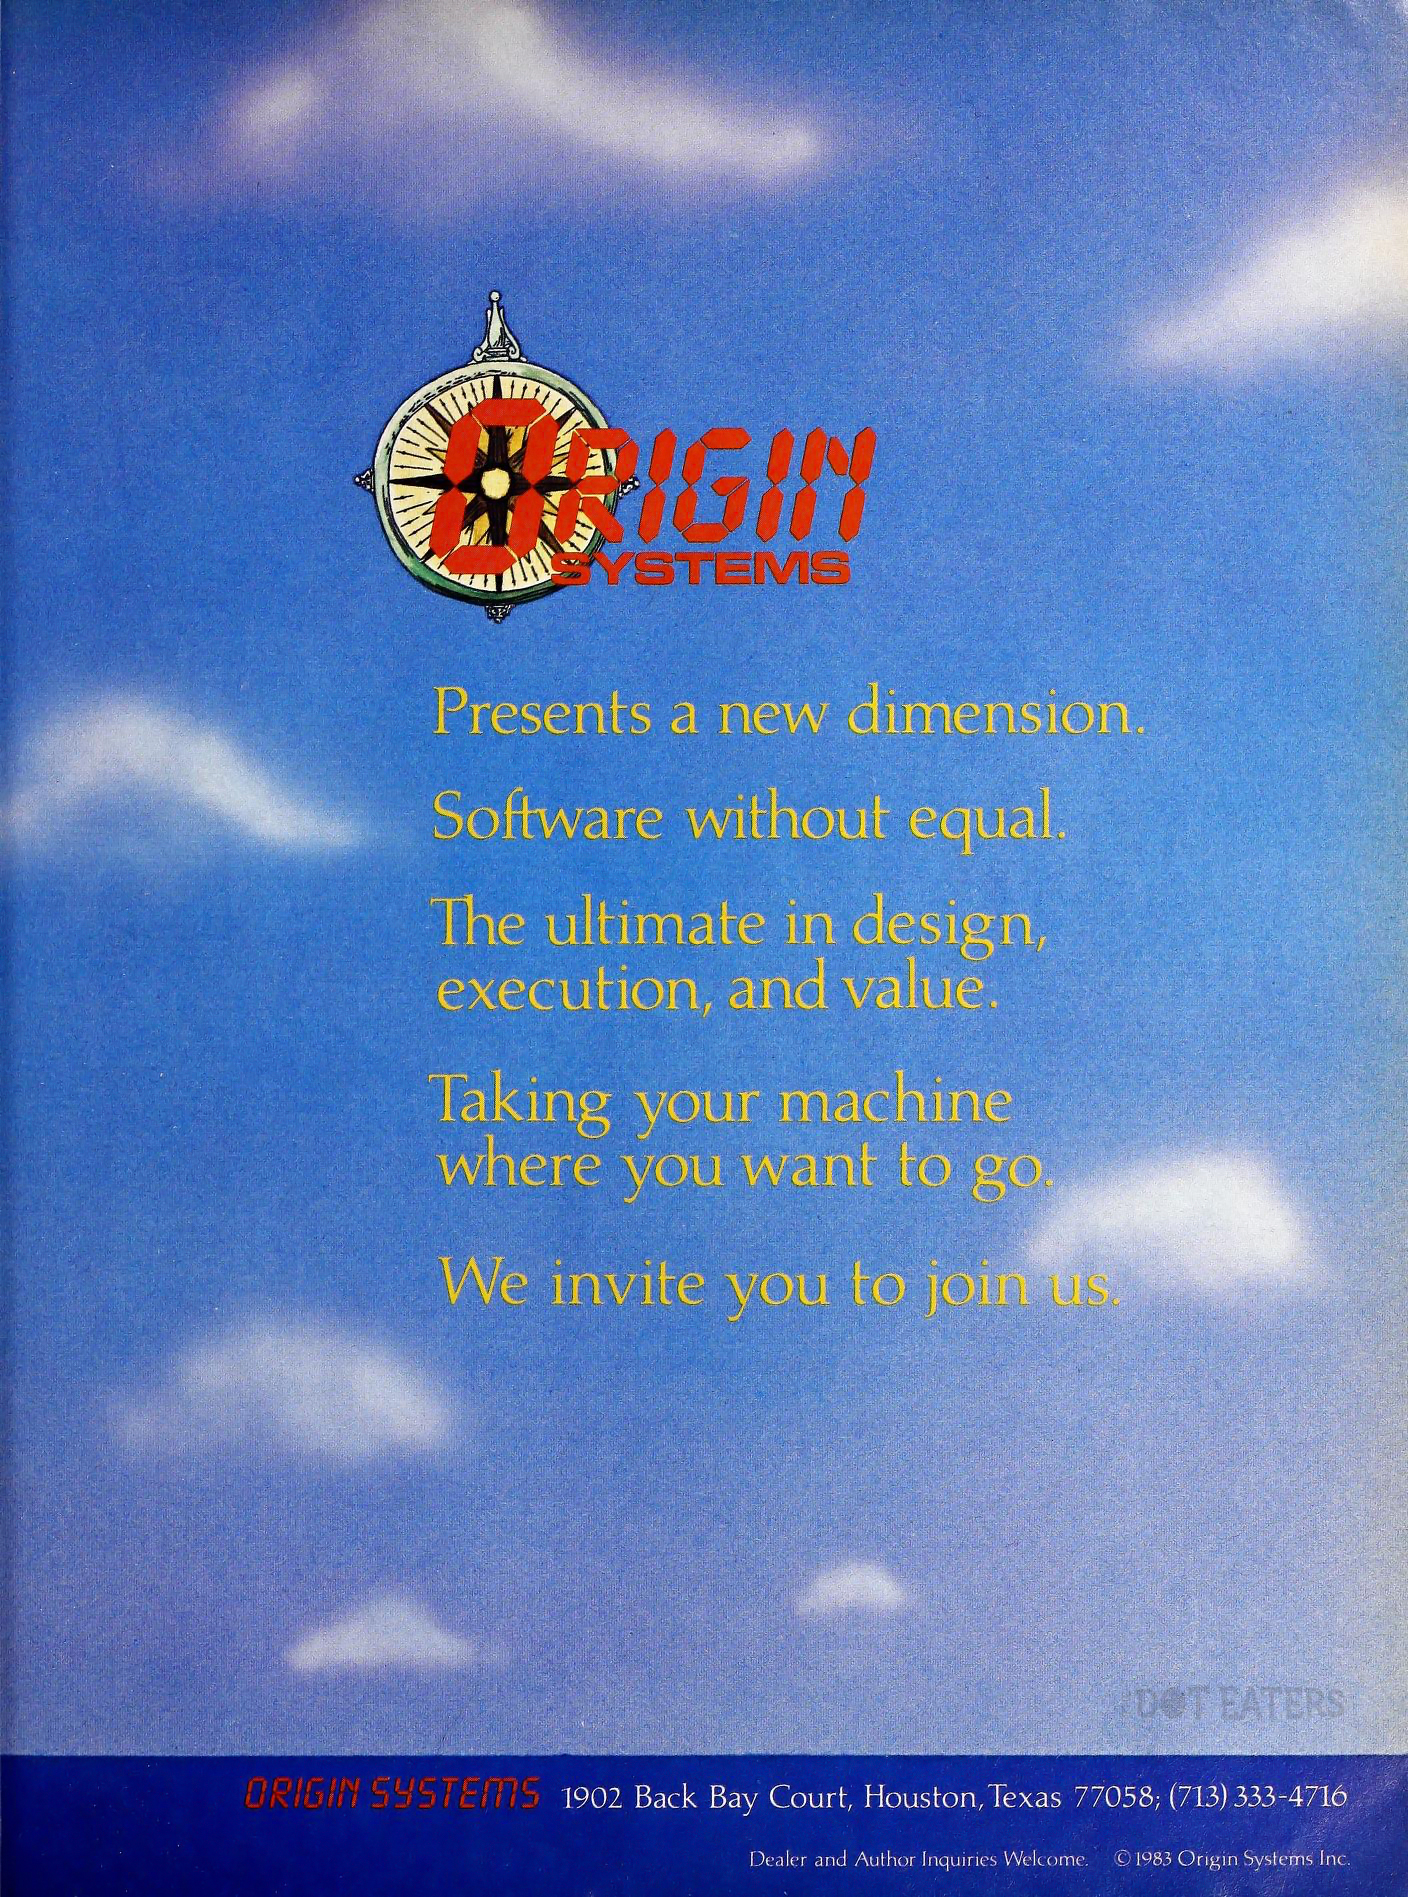 An ad announcing the formation of Origin, a computer video game company by Richard Garriott aka Lord British